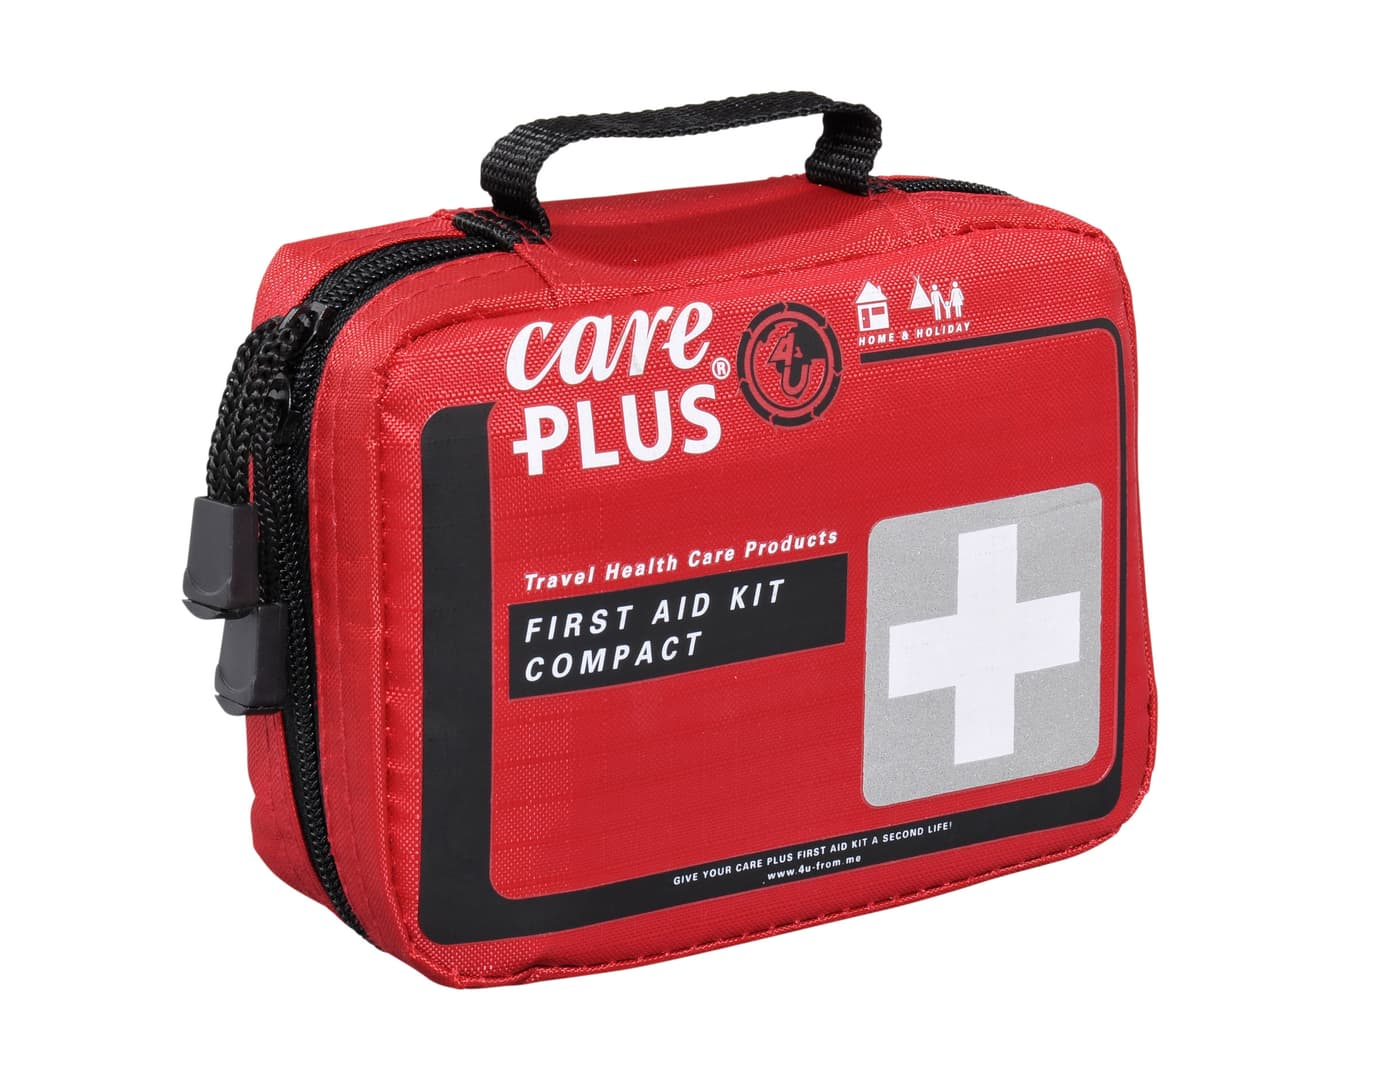 care plus first aid kit compact erste hilfe set migros. Black Bedroom Furniture Sets. Home Design Ideas